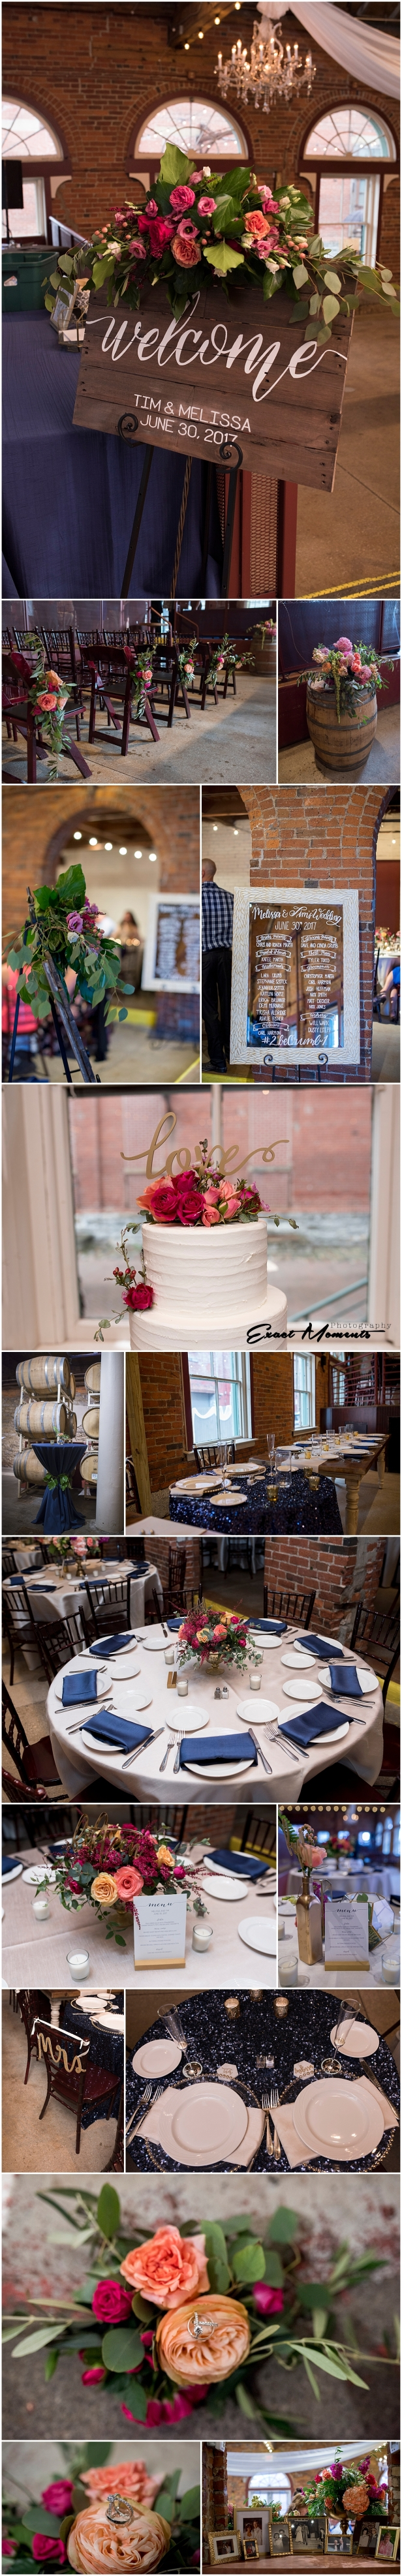 Via Vecchia Wedding Venue Columbus oHio